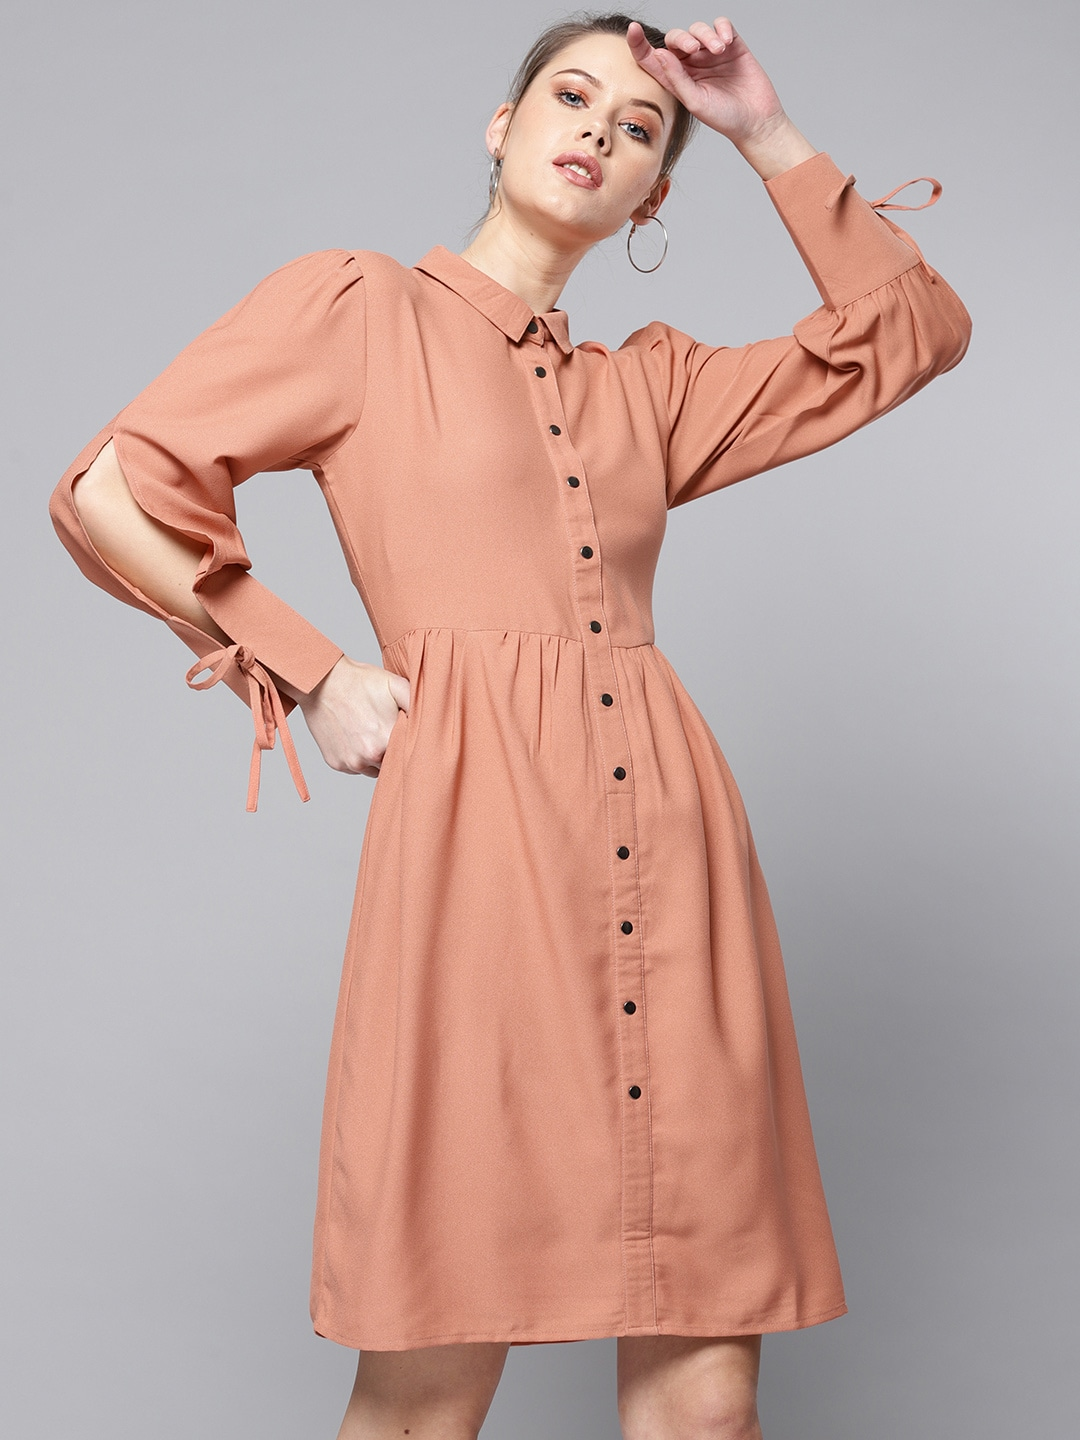 92cc92b6d1b0 Long Sleeve Dress - Buy Full Sleeve Dresses Online